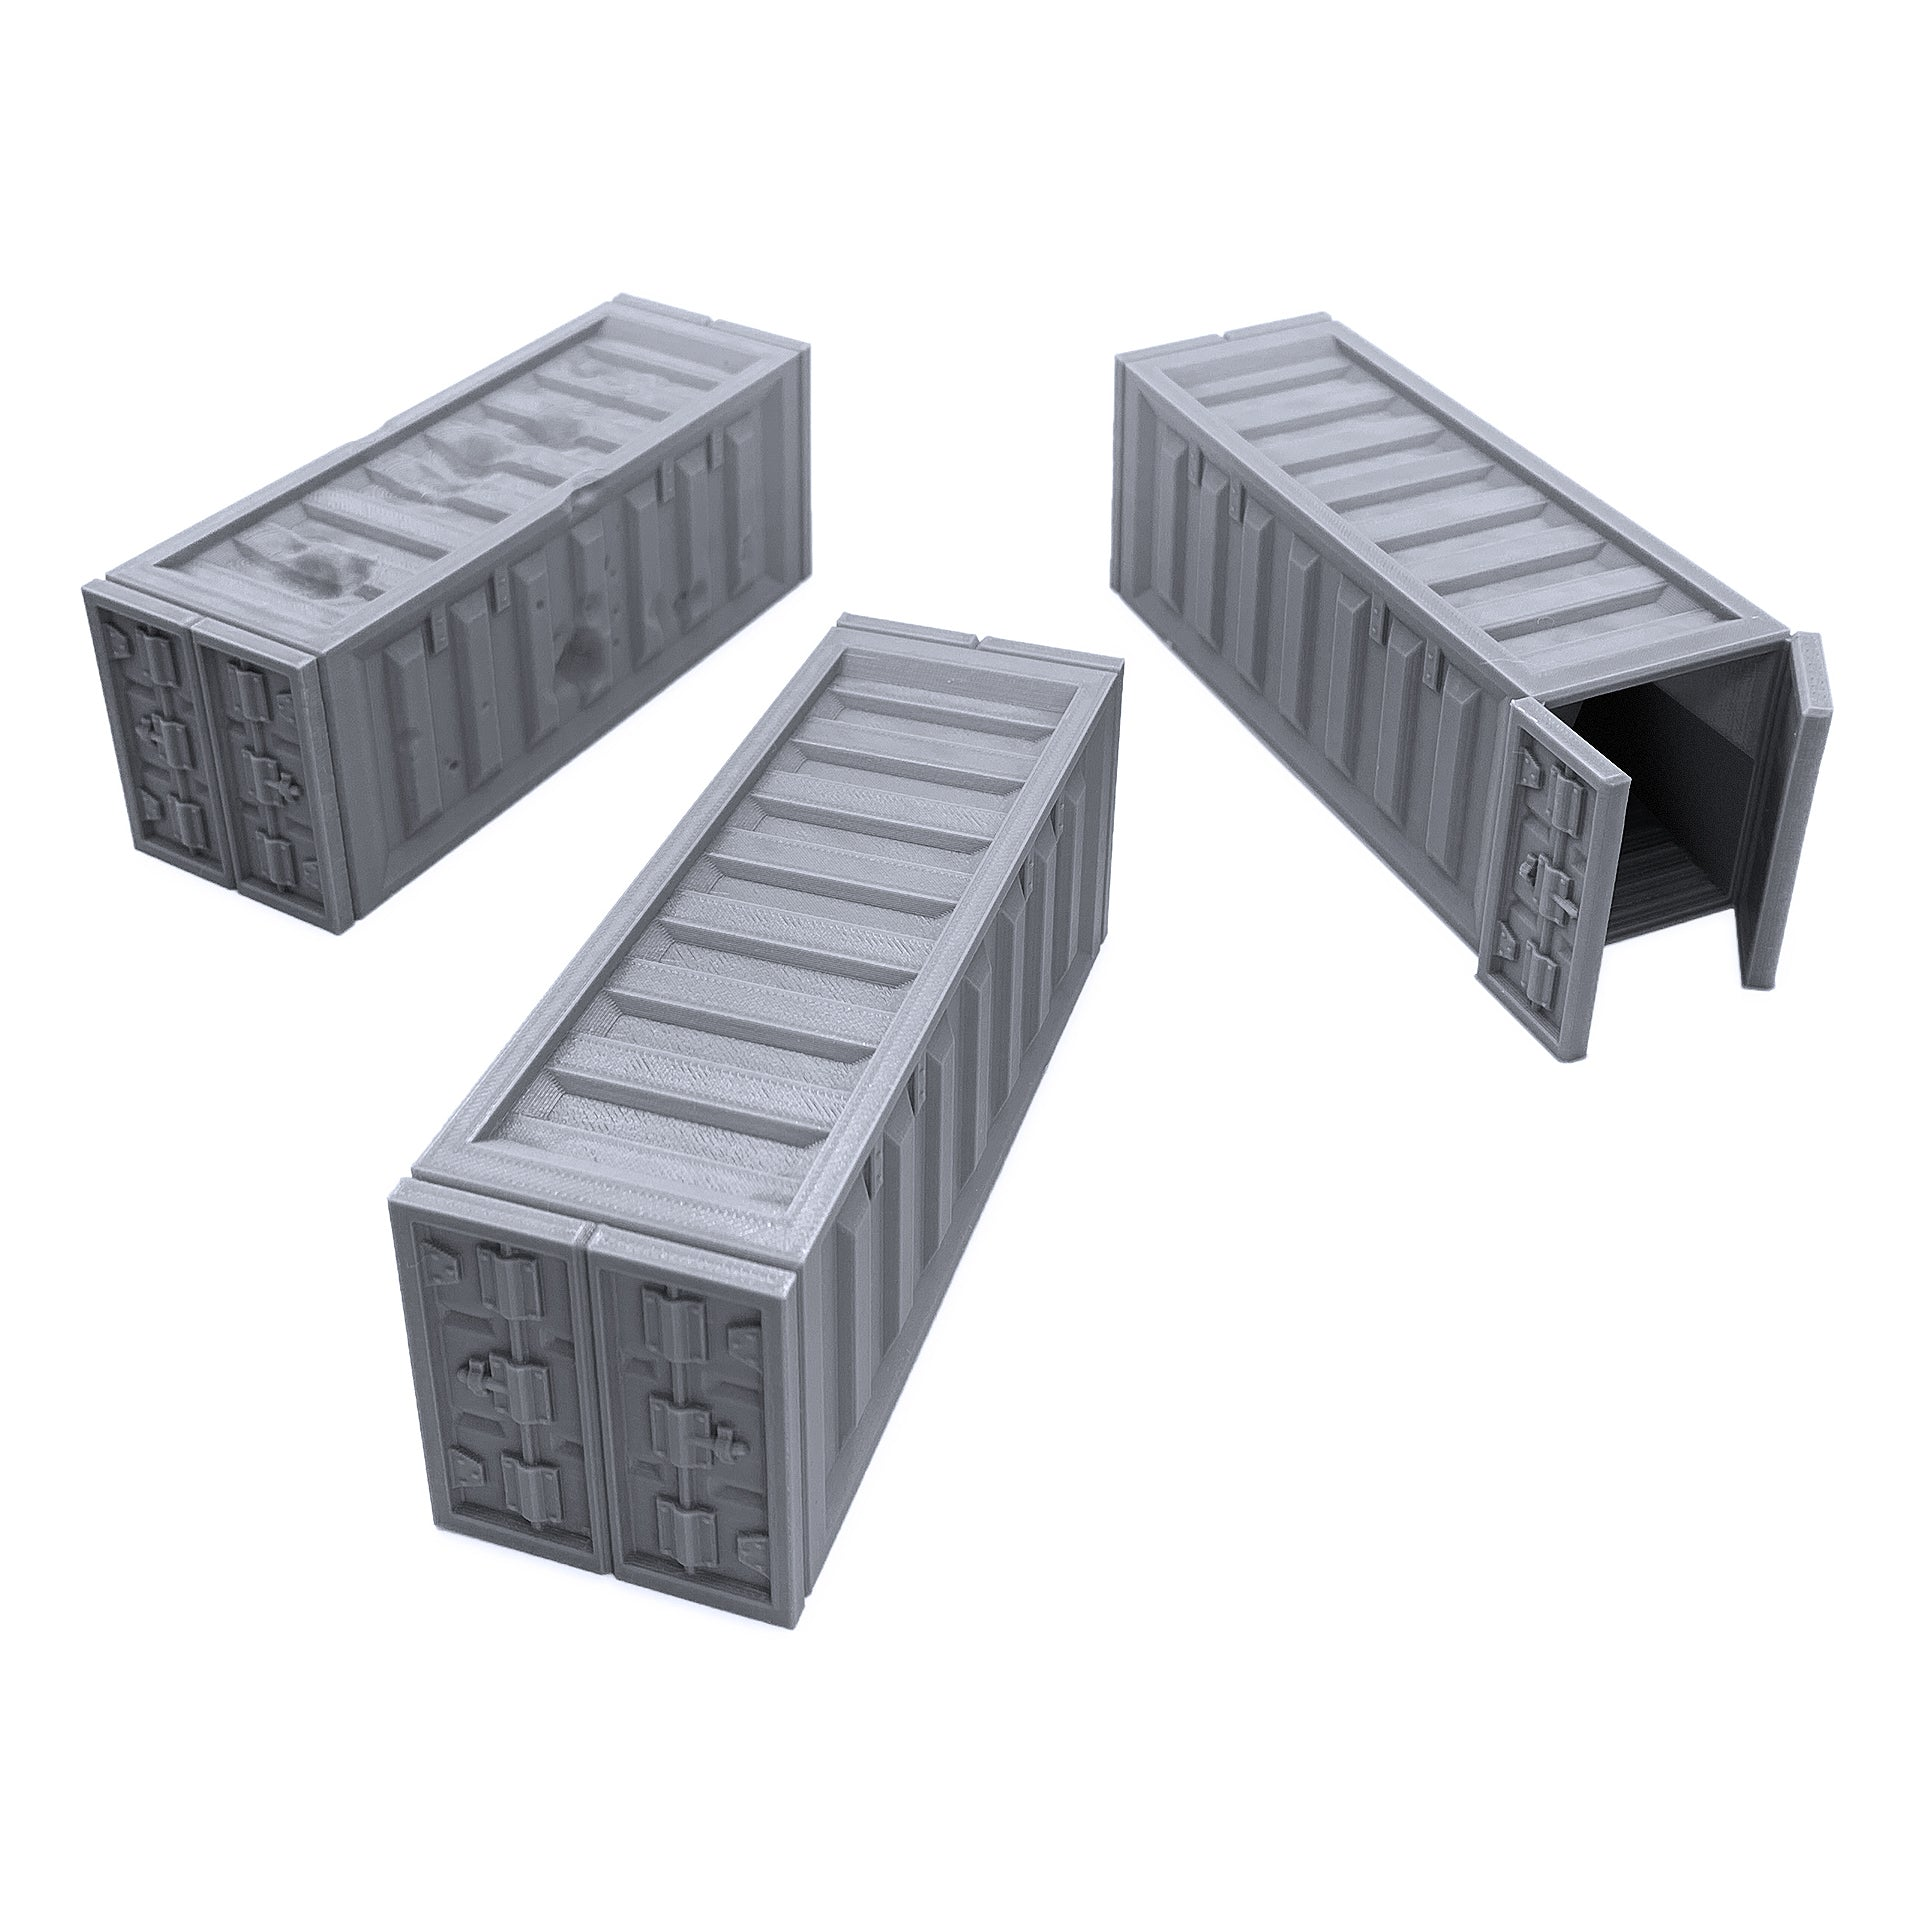 Cargo Containers - EnderToys Terrain